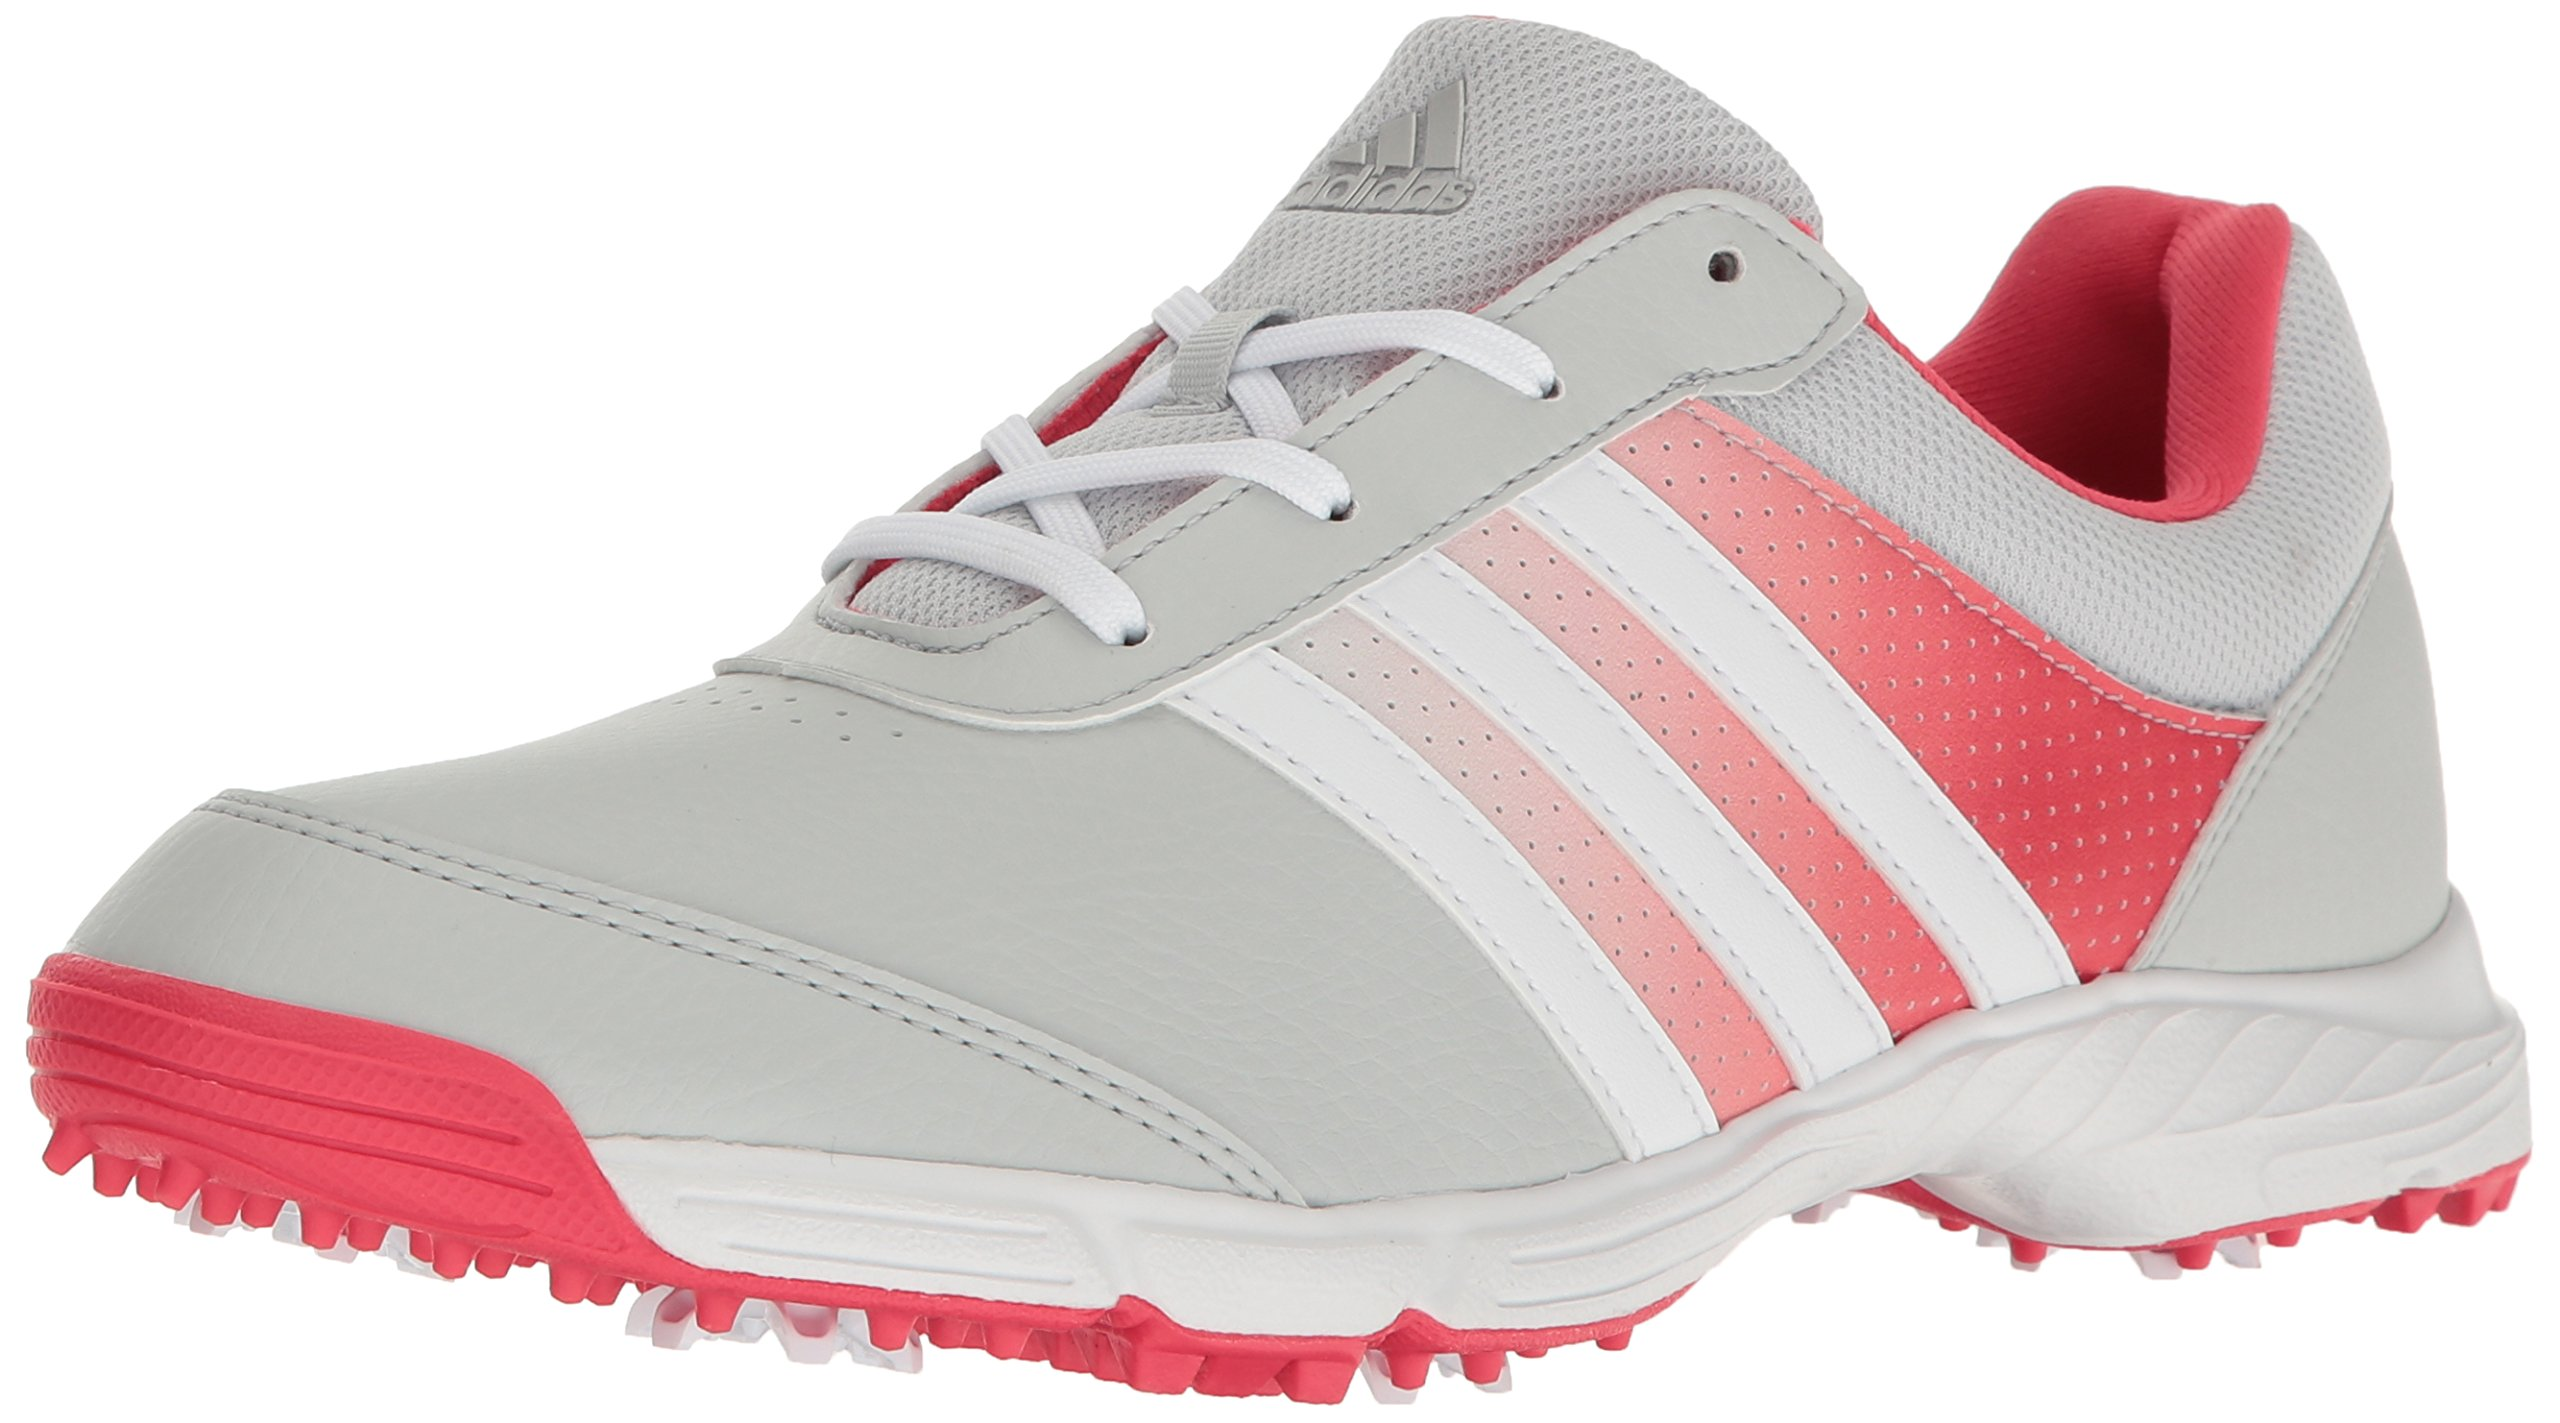 adidas Women's Tech Response Golf Shoe, Clear/Grey, 7.5 M US